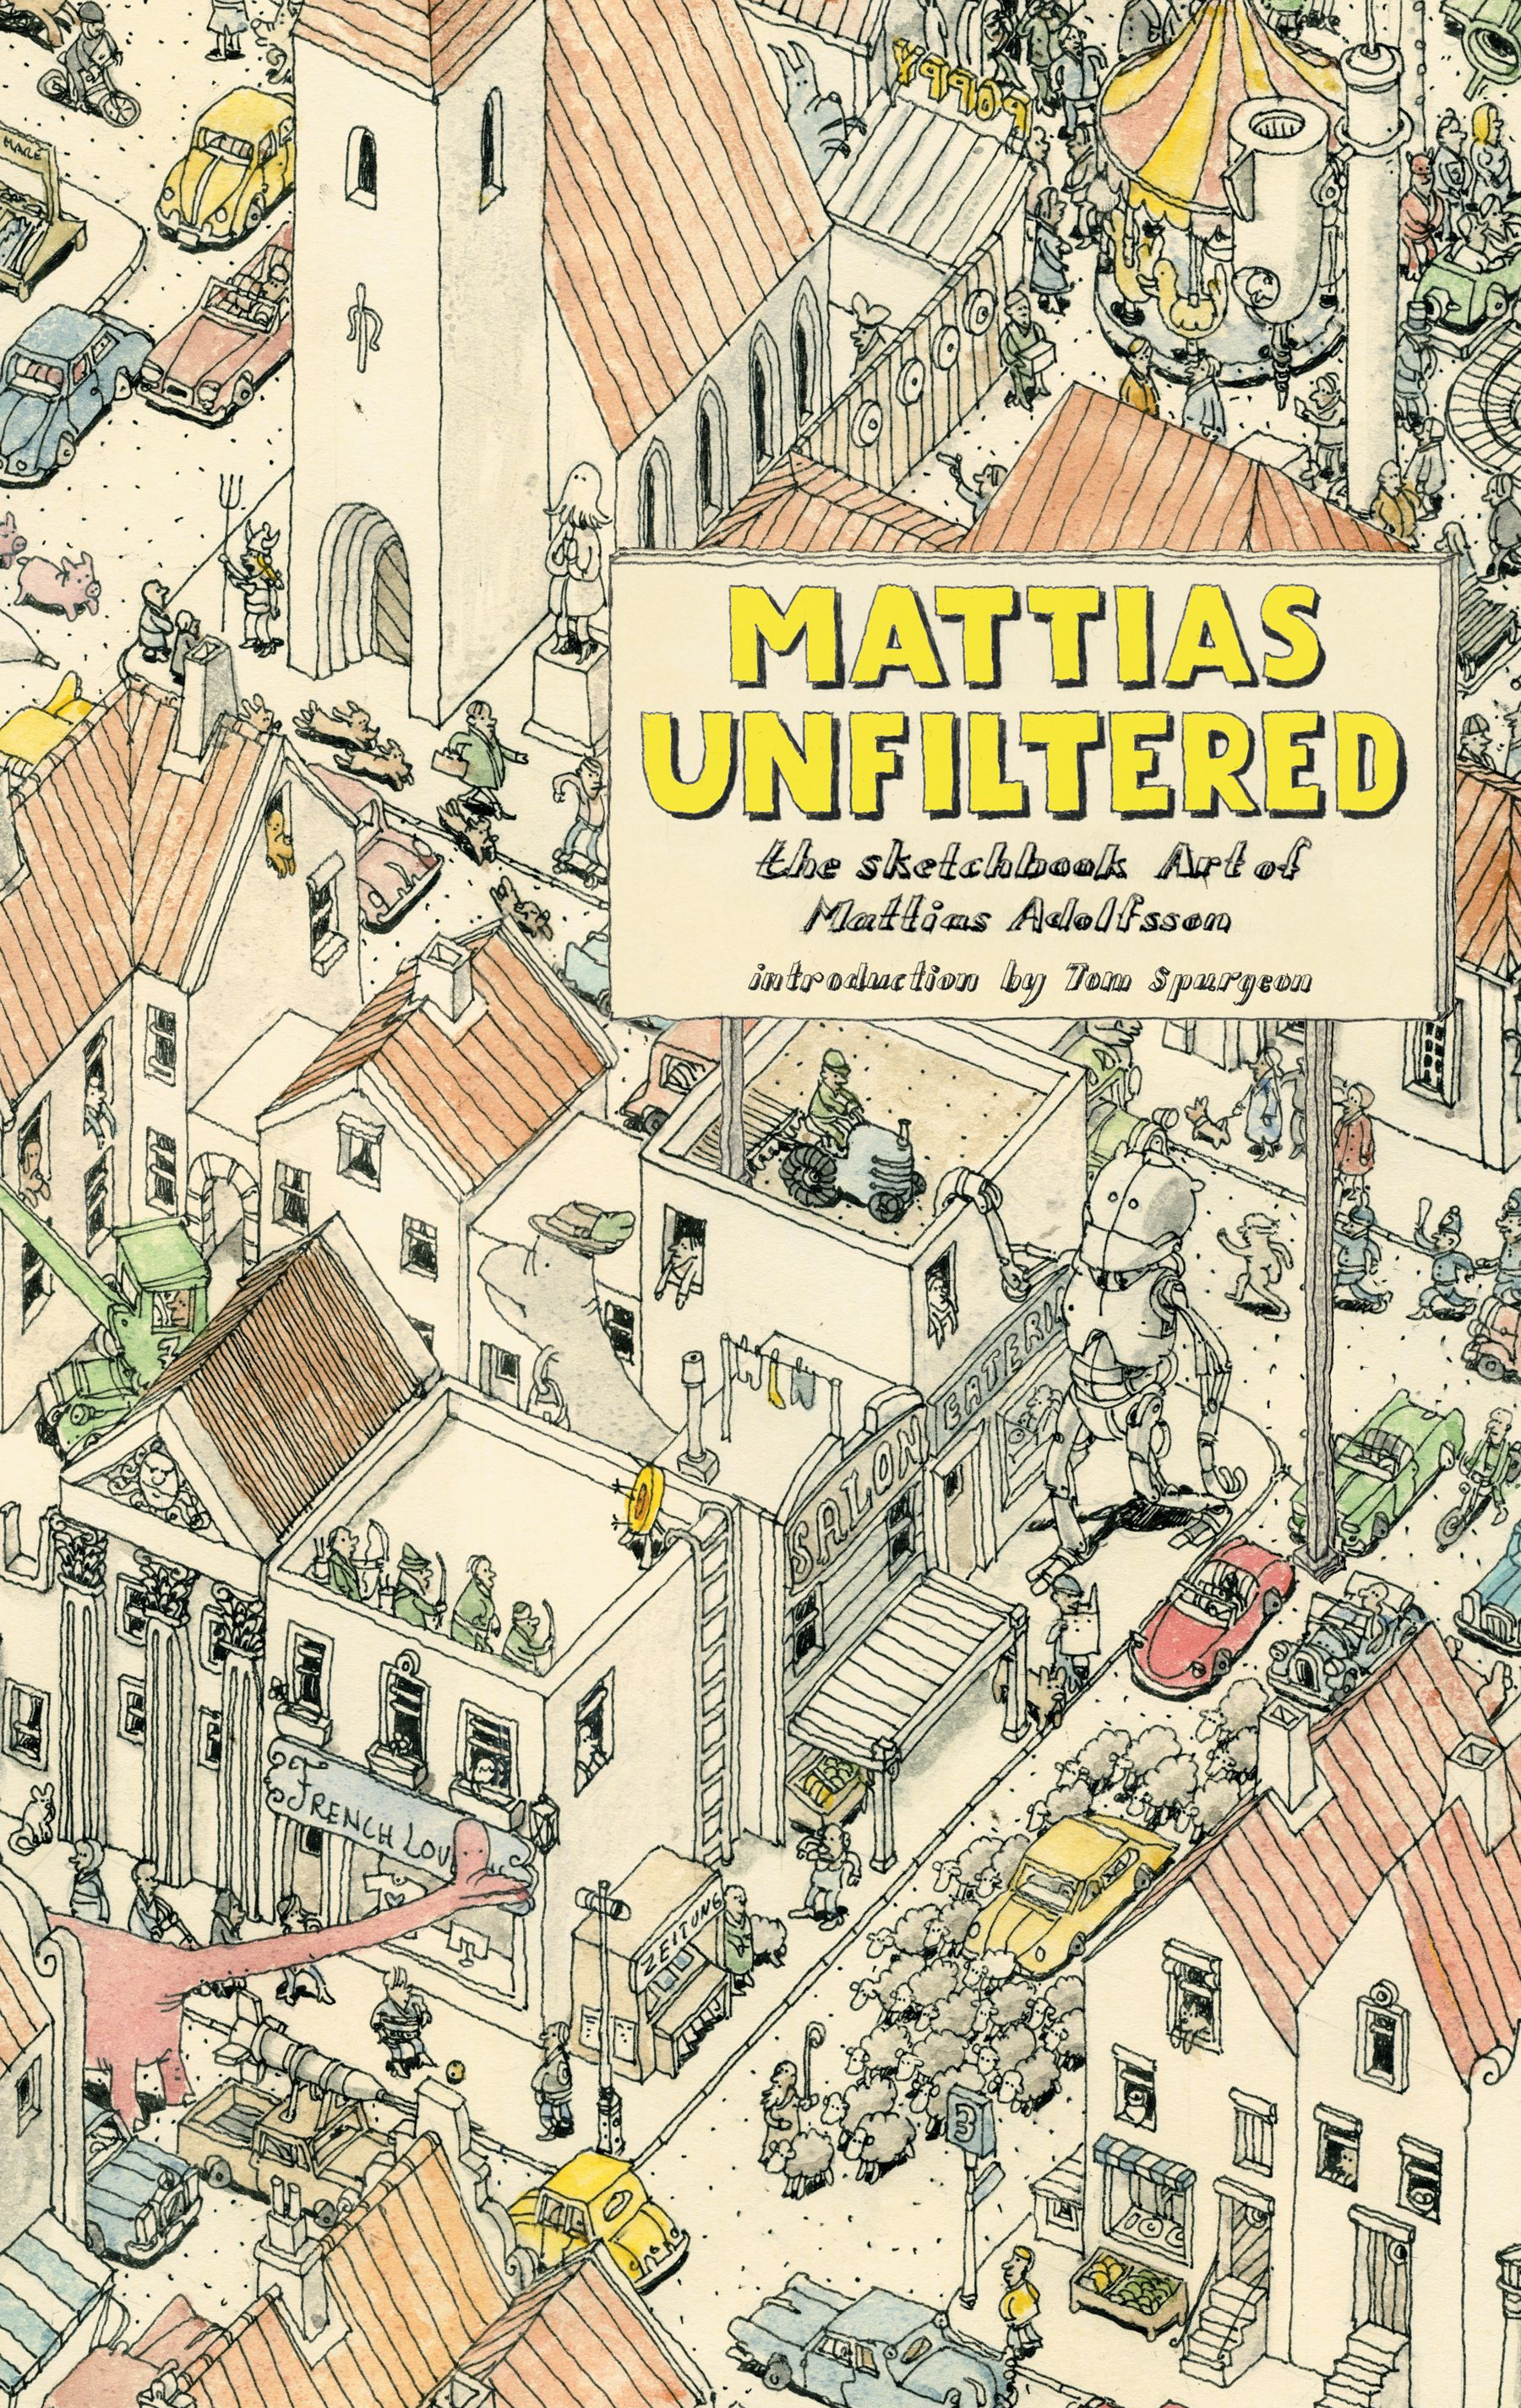 Mattias-unfiltered-the-sketchbook-art-of-mattias-9781608862771_hr